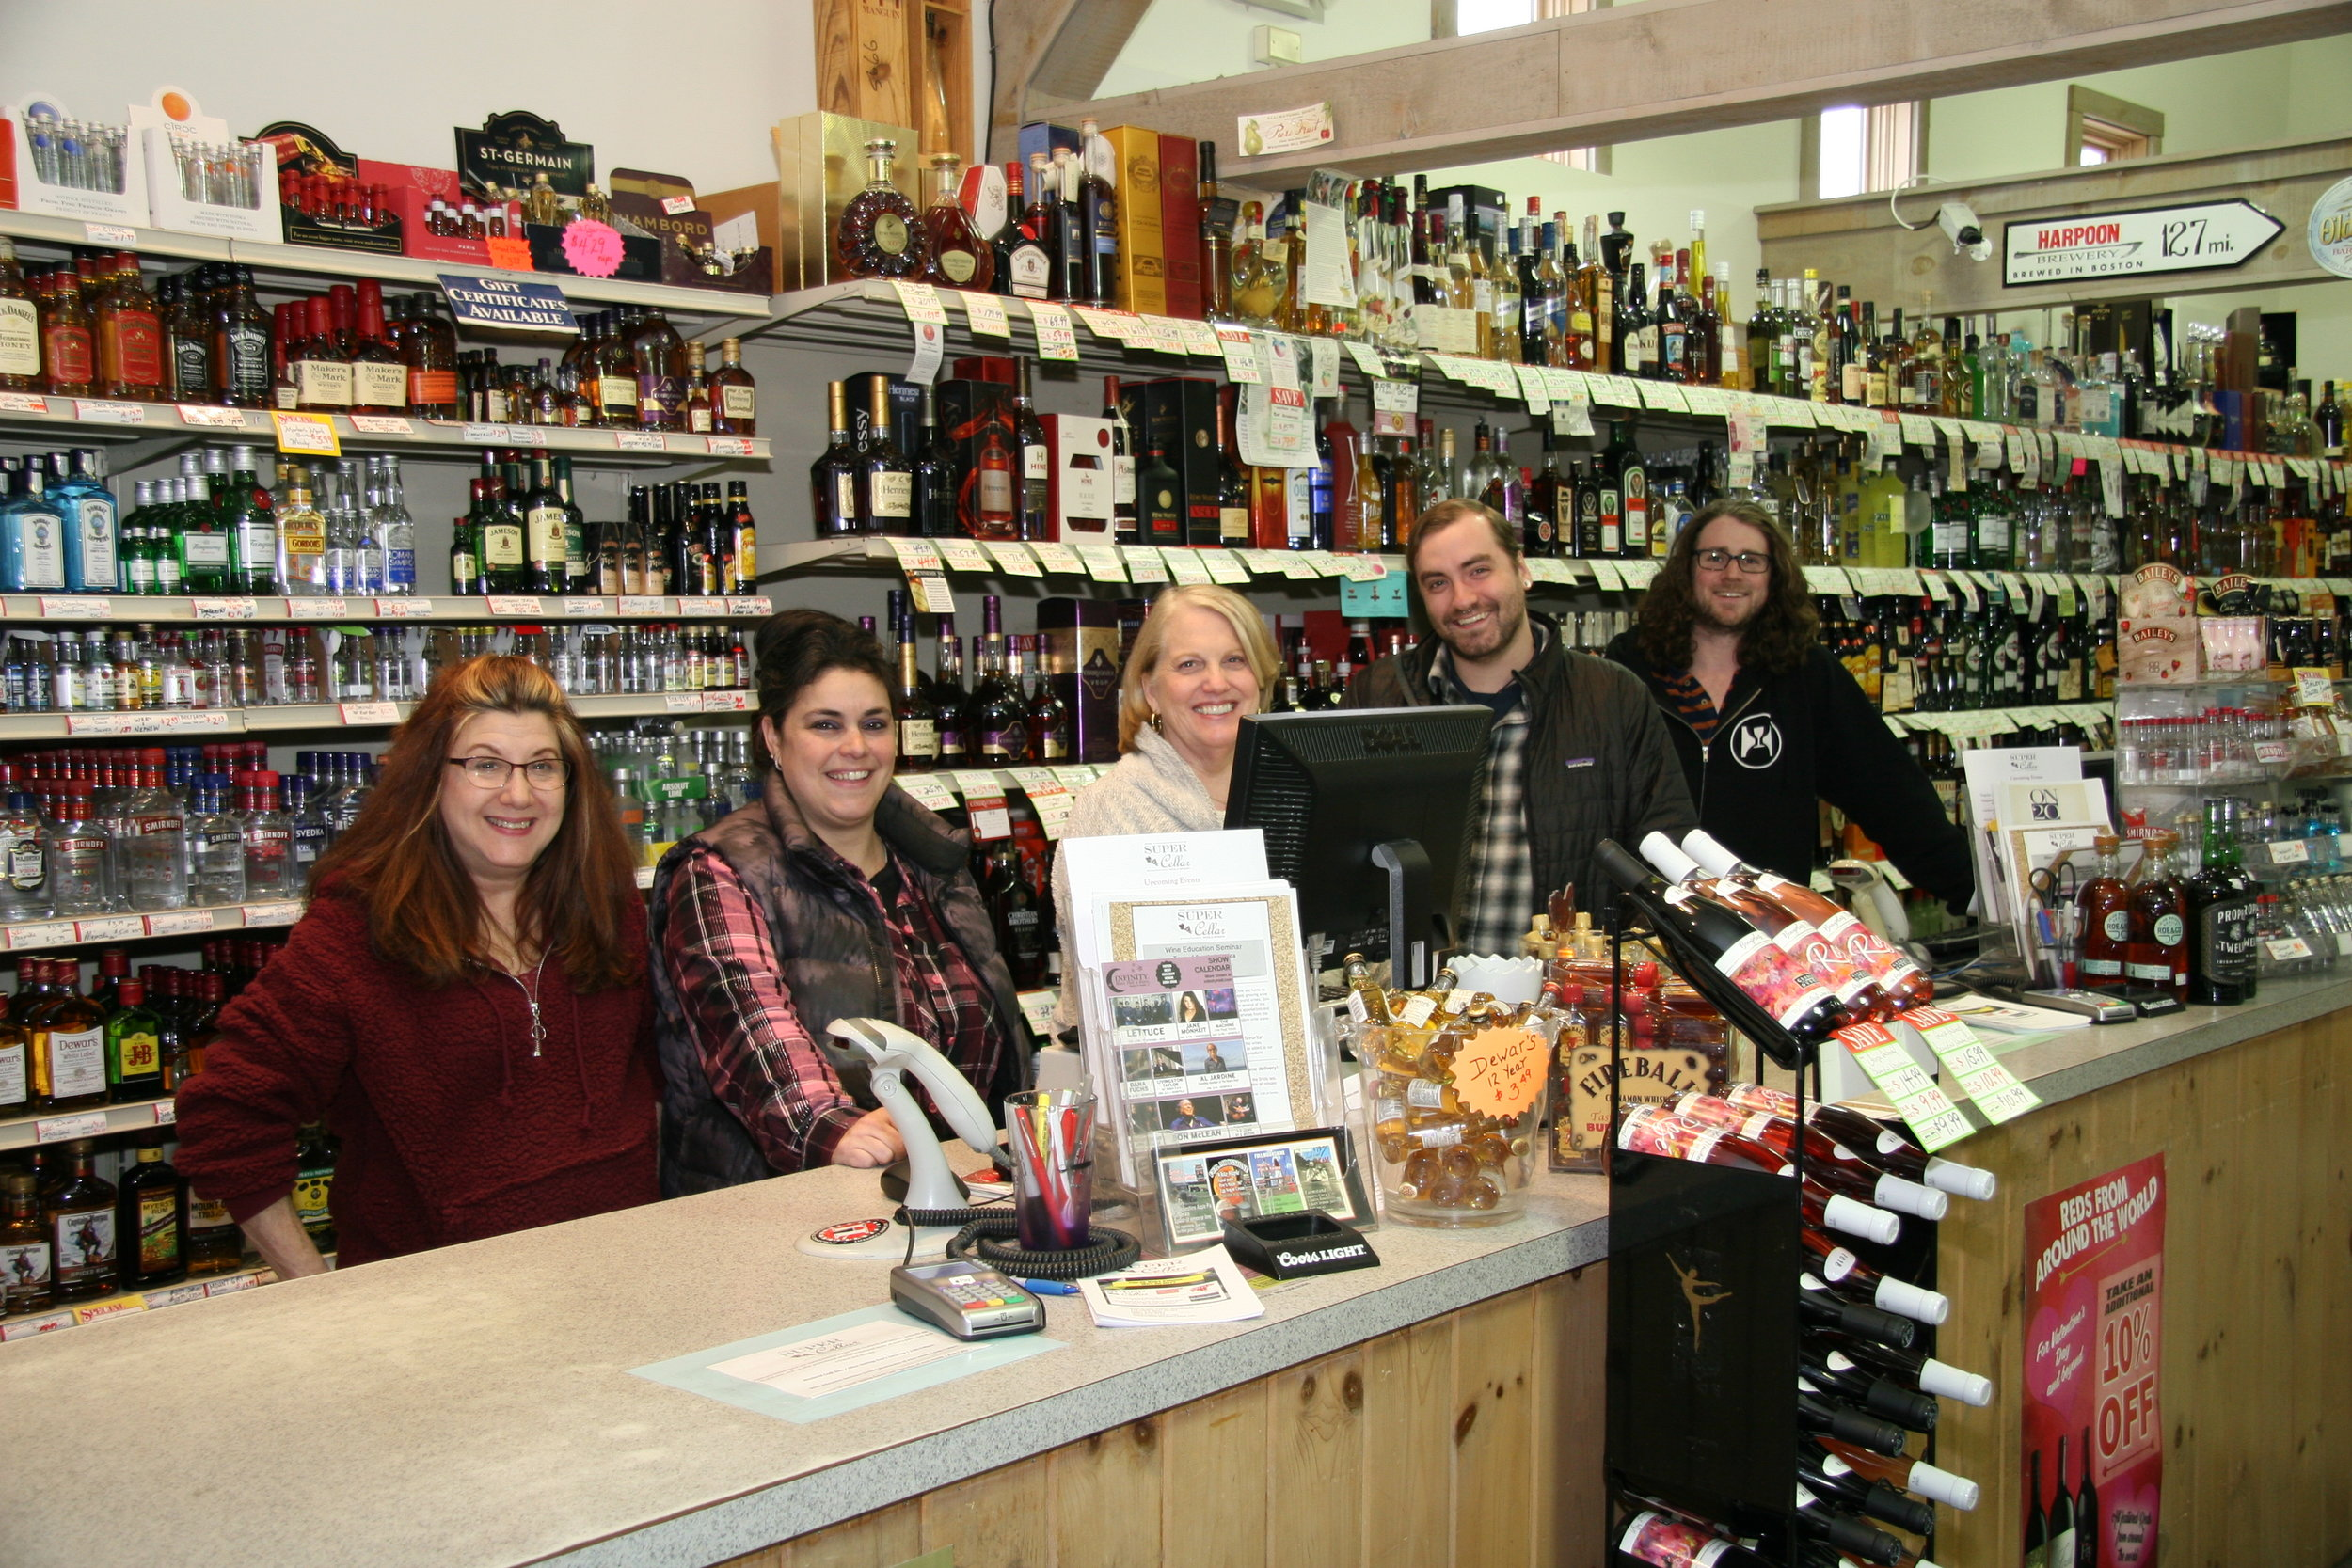 (Pictured: Our world-class team of beverage enthusiasts!